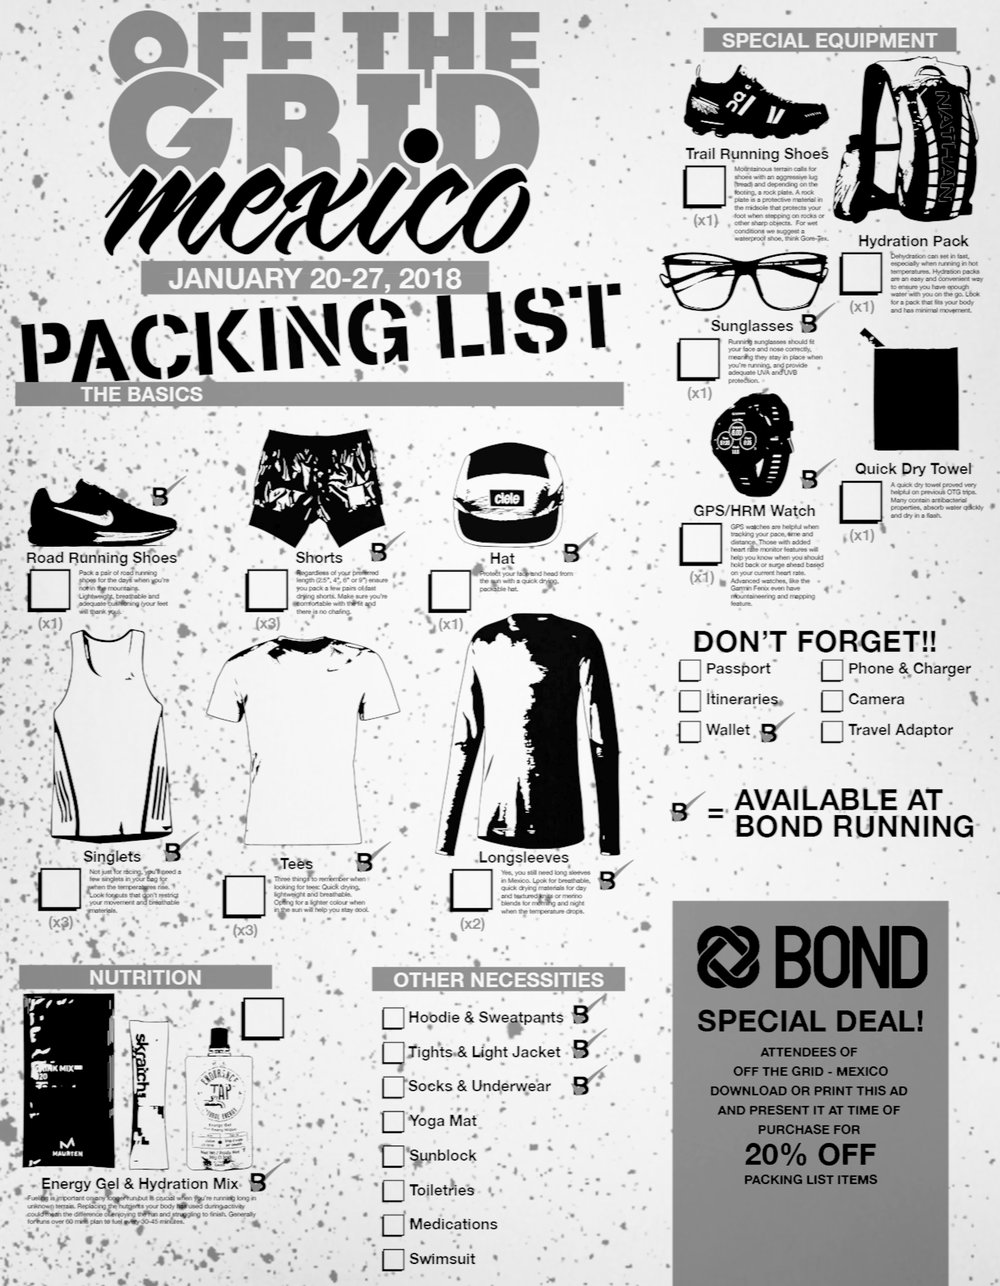 "We at Bond Running have put together a little list to help you pack for your OTG adventure in Chiapas, Mexico. The printable packing list will make sure you bring everything you need and avoid packing unnecessary items. We've broken the list down by item, provided a checklist and included a section for other essentials you'll need to ensure you have a great time on your trip.  All items marked with  B✓  can be purchased at Bond Running. All others can be found at MEC. Bring your checklist into the store and we'll help you pick out everything you'll need. As an added bonus, showing us your checklist will get you 20% off your purchase! If you're interested in a new Garmin GPS watch, all orders will need to be placed by January 7th to ensure they arrive on time.     THE BASICS    Road Running Shoes    Pack a pair of road running shoes for the days when you're not in the mountains. Lightweight, breathable and adequate cushioning (your feet will thank you). Bring a model you're currently comfortable running in to prevent any unnecessary discomfort.   Shorts    Regardless of your preferred length (2.5"", 4"", 6"" or 9"") ensure you pack a few pairs of fast drying shorts. Make sure you're comfortable with the fit and there is no chafing.   Singlets    Not just for racing, you'll need a few singlets in your bag for when the temperatures rise. Look for cuts that don't restrict your movement made from breathable materials.   Tees   Three things to remember when looking for tees: Quick drying, lightweight and breathable. Opting for a lighter colour when in the sun will help you stay cool.   Long Sleeves    Yes, you still need long sleeves in Mexico. Look for breathable, quick drying materials for day and textured knits or merino blends for morning and night when the temperature drops.   Hat    Protect your face and head from the sun with a quick drying, packable hat. We suggest a hat from Ciele for its wickable material, pliable construction (you can cram it in your back with zero consequences) and UV protection panels.         SPECIAL EQUIPMENT    Trail Running Shoe    Mountainous terrain calls for shoes with an aggressive lug (tread) and depending on the footing, a rock plate. A rock plate is a protective material in the midsole that protects your foot when stepping on rocks or other sharp objects.  For wet conditions we suggest a waterproof shoe, think Gore-Tex.   Hydration Pack    Dehydration can set in fast, especially when running in hot temperatures. Hydration packs are an easy and convenient way to ensure you have enough water with you on the go. Look for a pack that fits your body and has minimal movement.   Sunglasses    Running sunglasses should fit your face and nose correctly, meaning they stay in place when you're running, and provide adequate UVA and UVB protection.  Brands like District Vision have adapted different lenses for different types of sun coverage - yellow for low light (think sunrise and sunset), rose for trail running, and grey or black for all day wear.   GPS/HRM Watch    Does the run even count if it's not on Strava? Joking aside, GPS watches are helpful when tracking your pace, time and distance. Those with added heart rate monitor features will help you know when you should hold back or surge ahead based on your current heart rate. Advanced watches, like the Garmin Fenix even have mountaineering and mapping features.   Quick Dry Towel    A quick dry towel proved very helpful on previous OTG trips. Many contain antibacterial properties, absorb water quickly and dry in a flash.       NUTRITION   Energy Gel and Hydration Mix  Fueling is important on any longer run but is crucial when you're running long in unknown terrain. Replacing the nutrients your body has used during activity could mean the difference of enjoying the run and struggling to finish. Generally for runs over 60 mins plan to fuel every 30-45 minutes. We offer a few great options from Skratch, Endurance Tap, and Maurten."